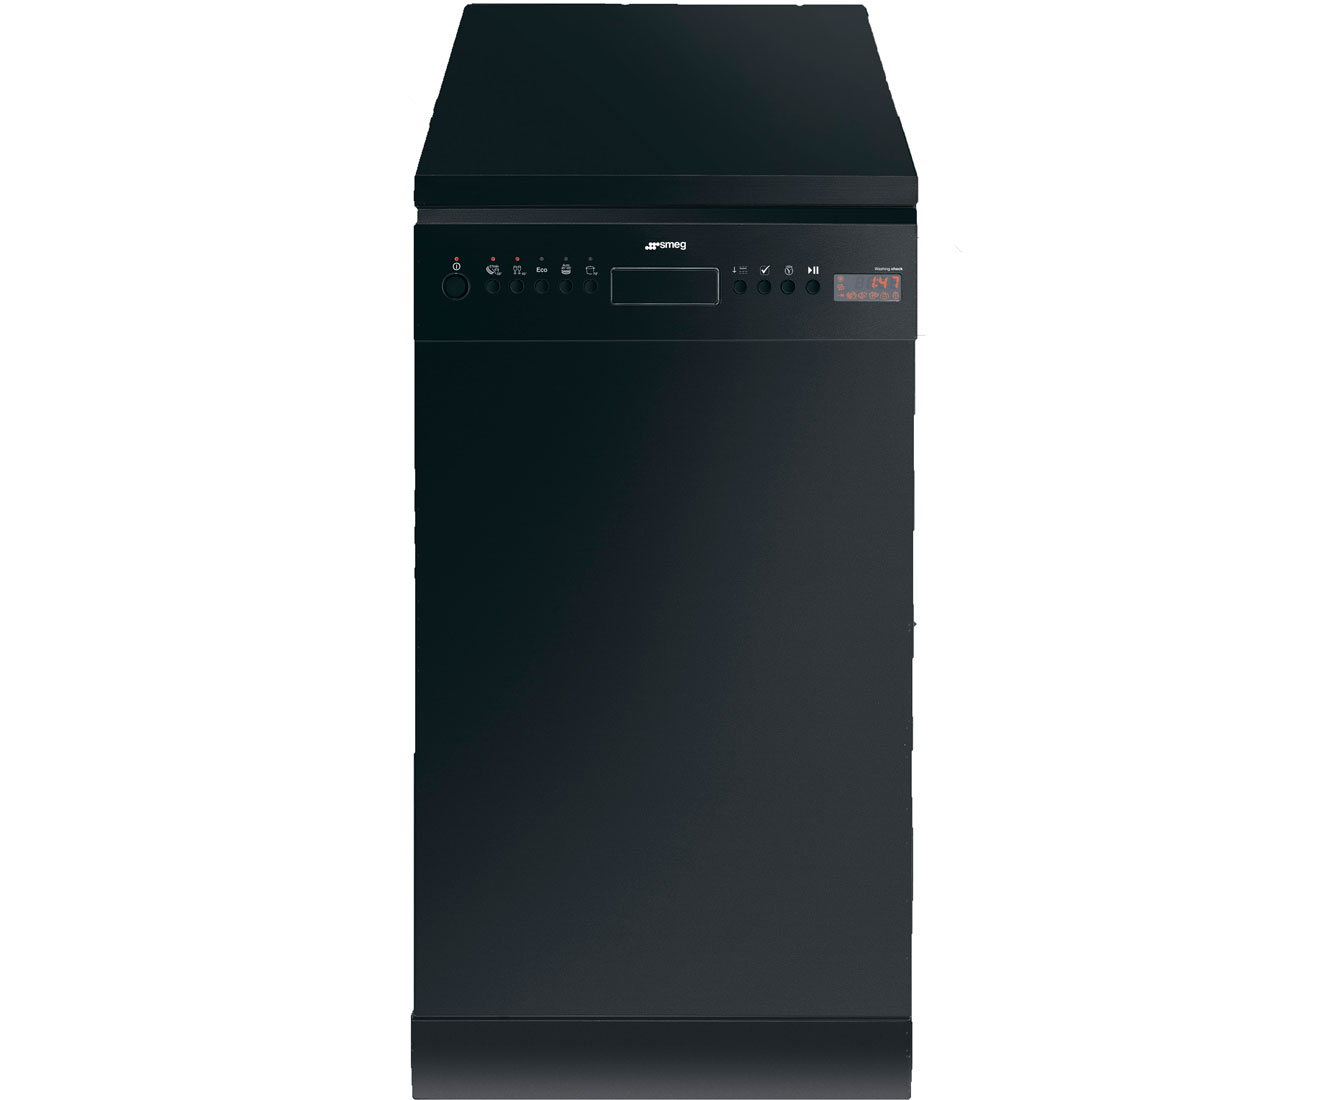 Smeg D4B1 Free Standing Slimline Dishwasher in Black